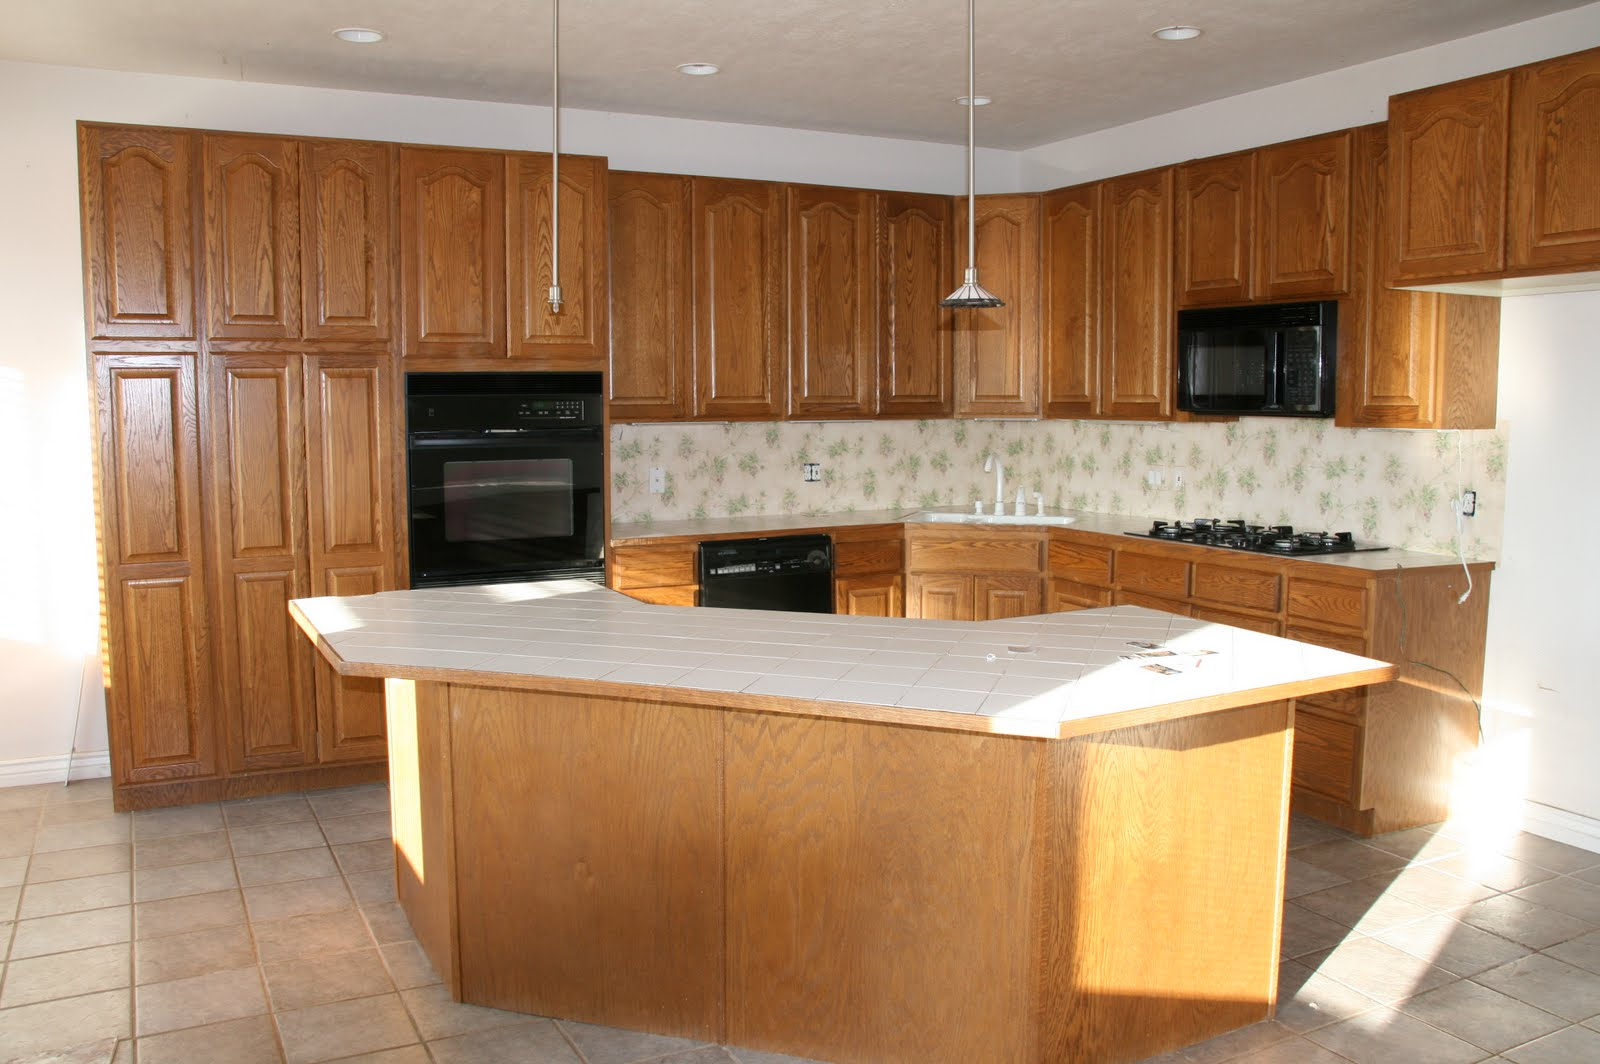 Kitchen Facelift Before And After French Country Island Retropolitan Part Deux